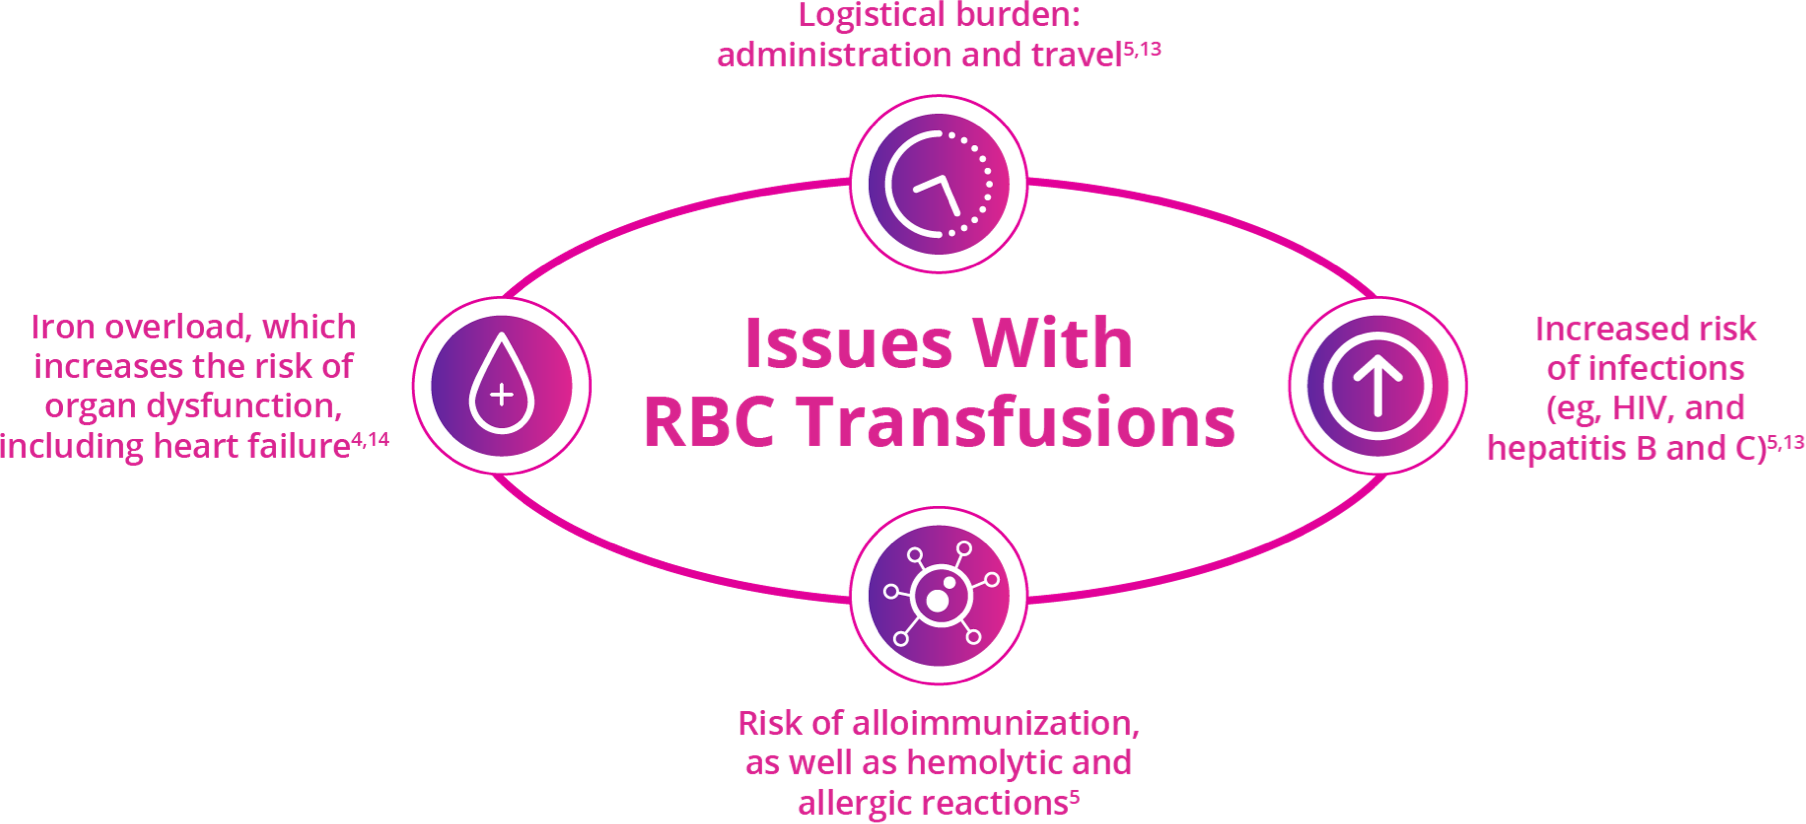 Red Blood Cell Transfusions Are Burdensome, Carry Risks, And Cause Secondary Complications